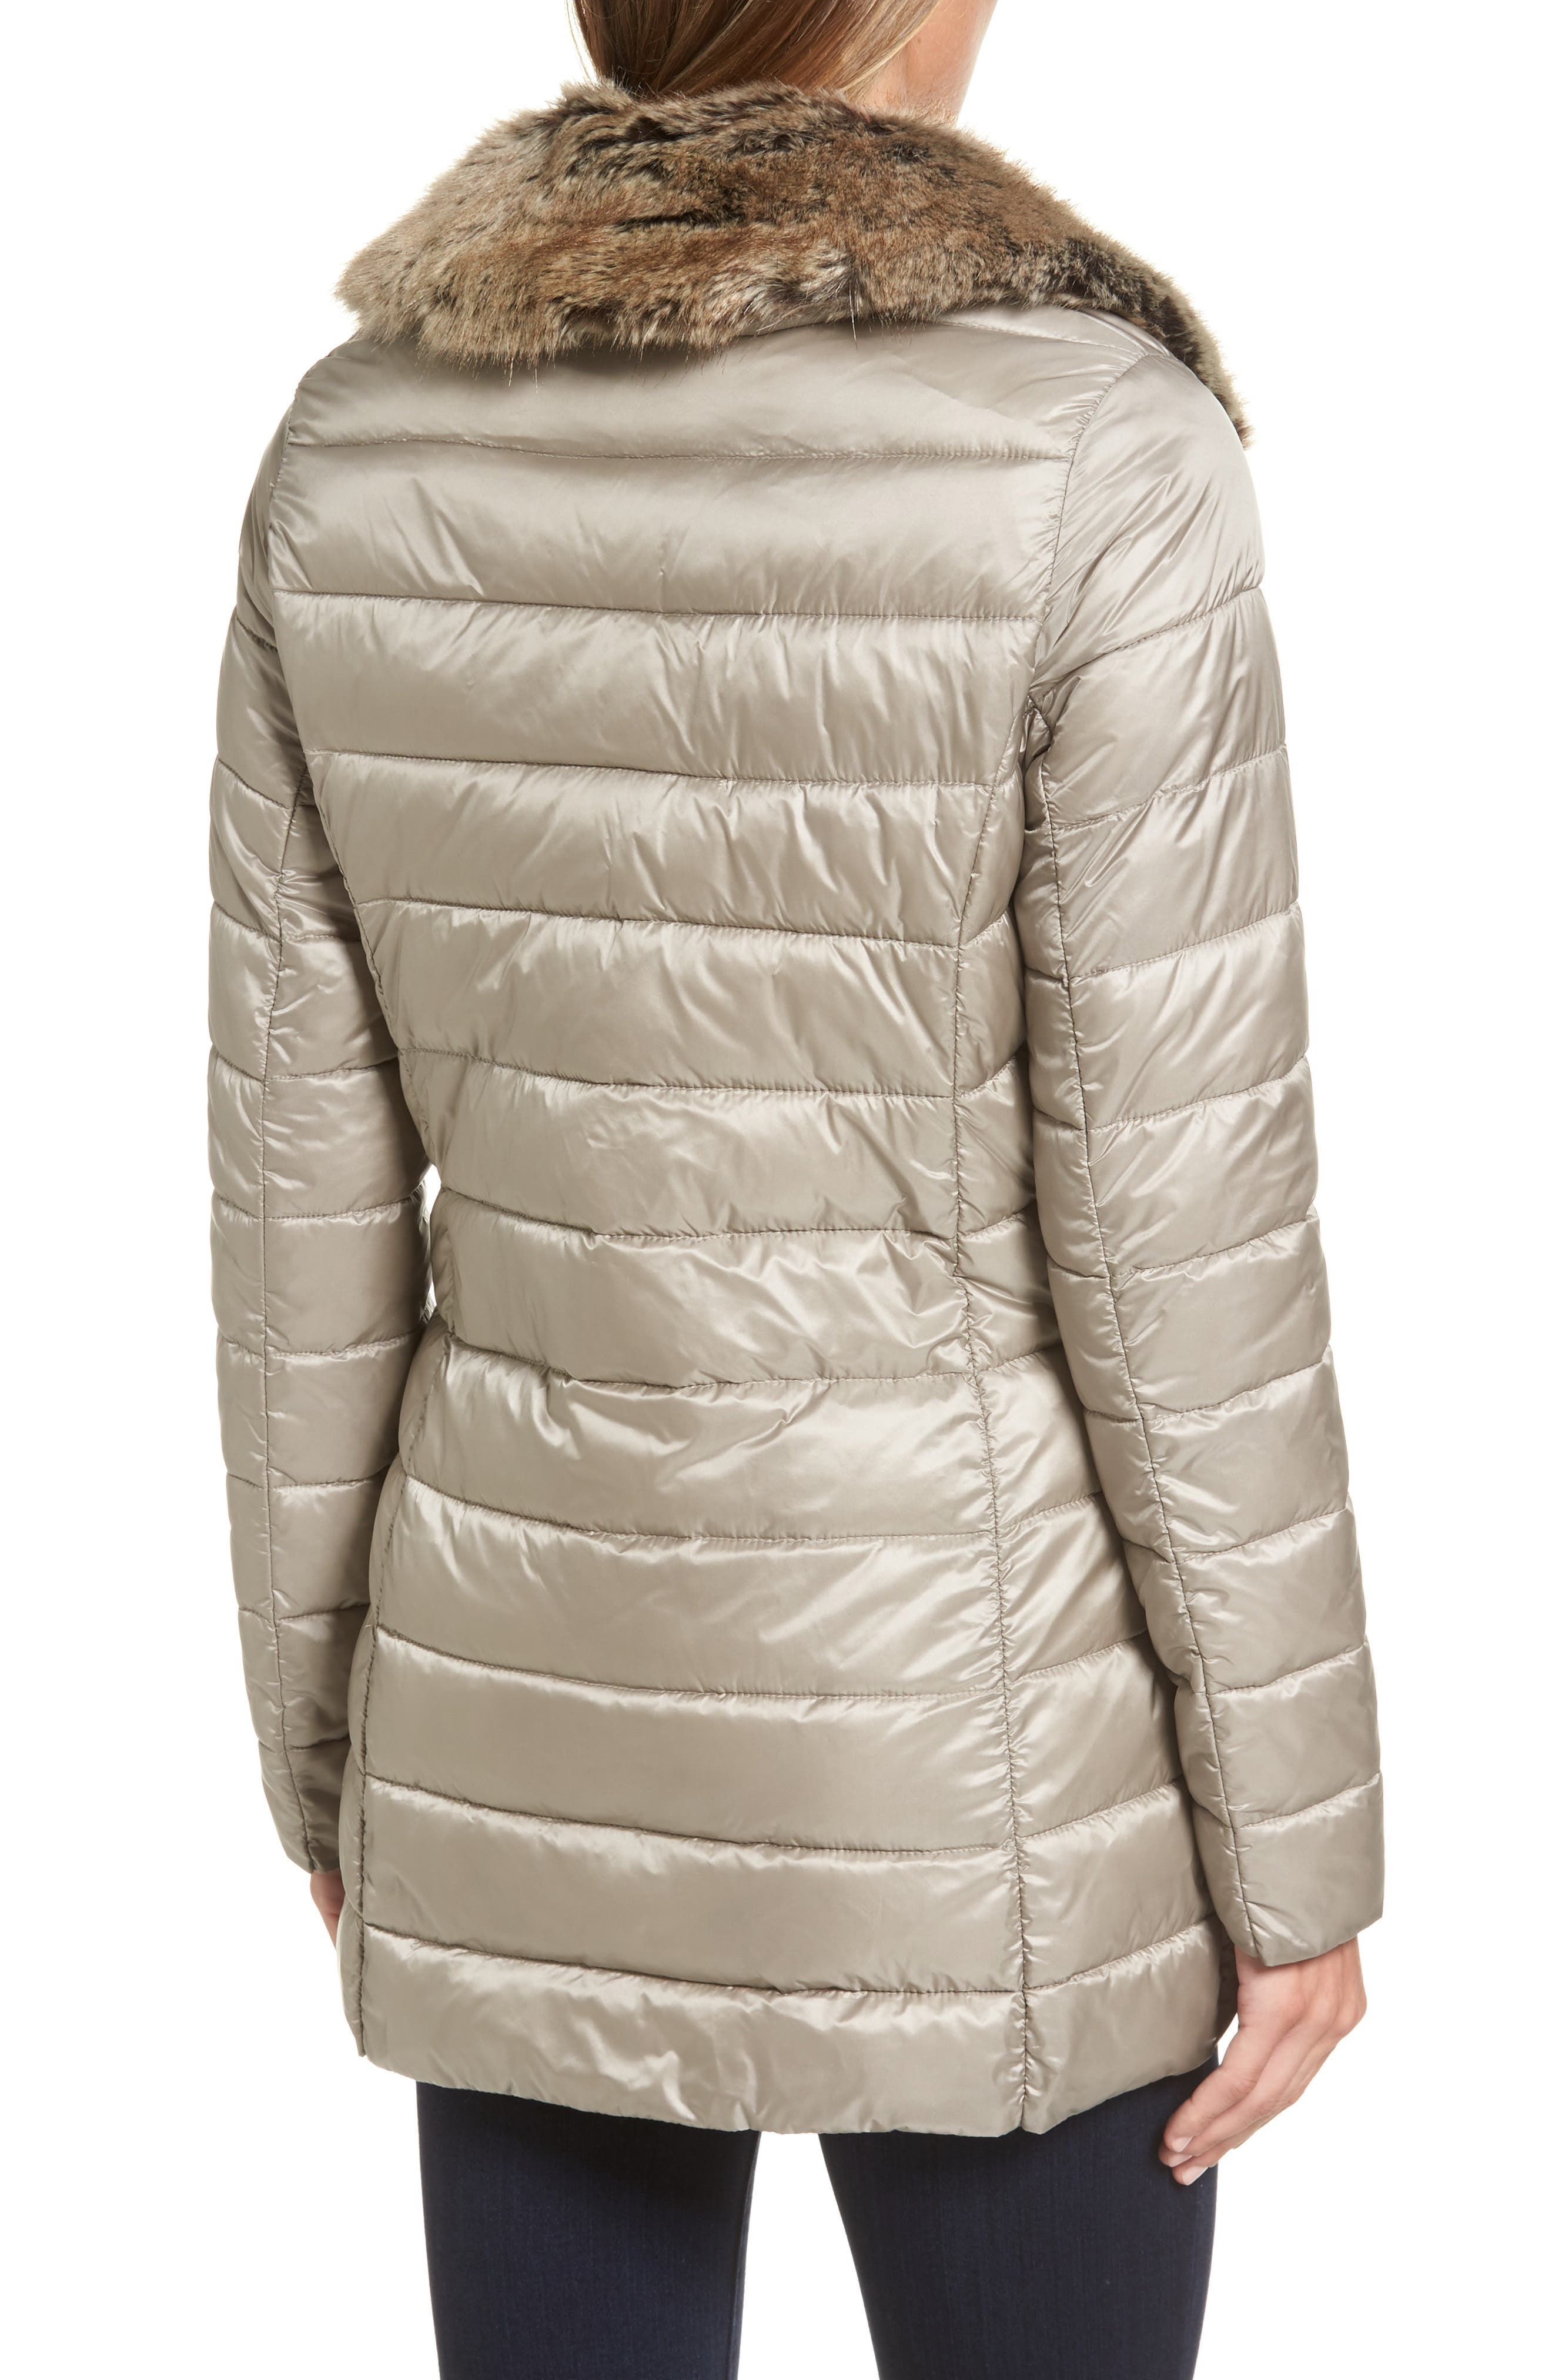 Rambleton Water Resistant Quilted Jacket with Faux Fur Collar,                             Alternate thumbnail 2, color,                             270